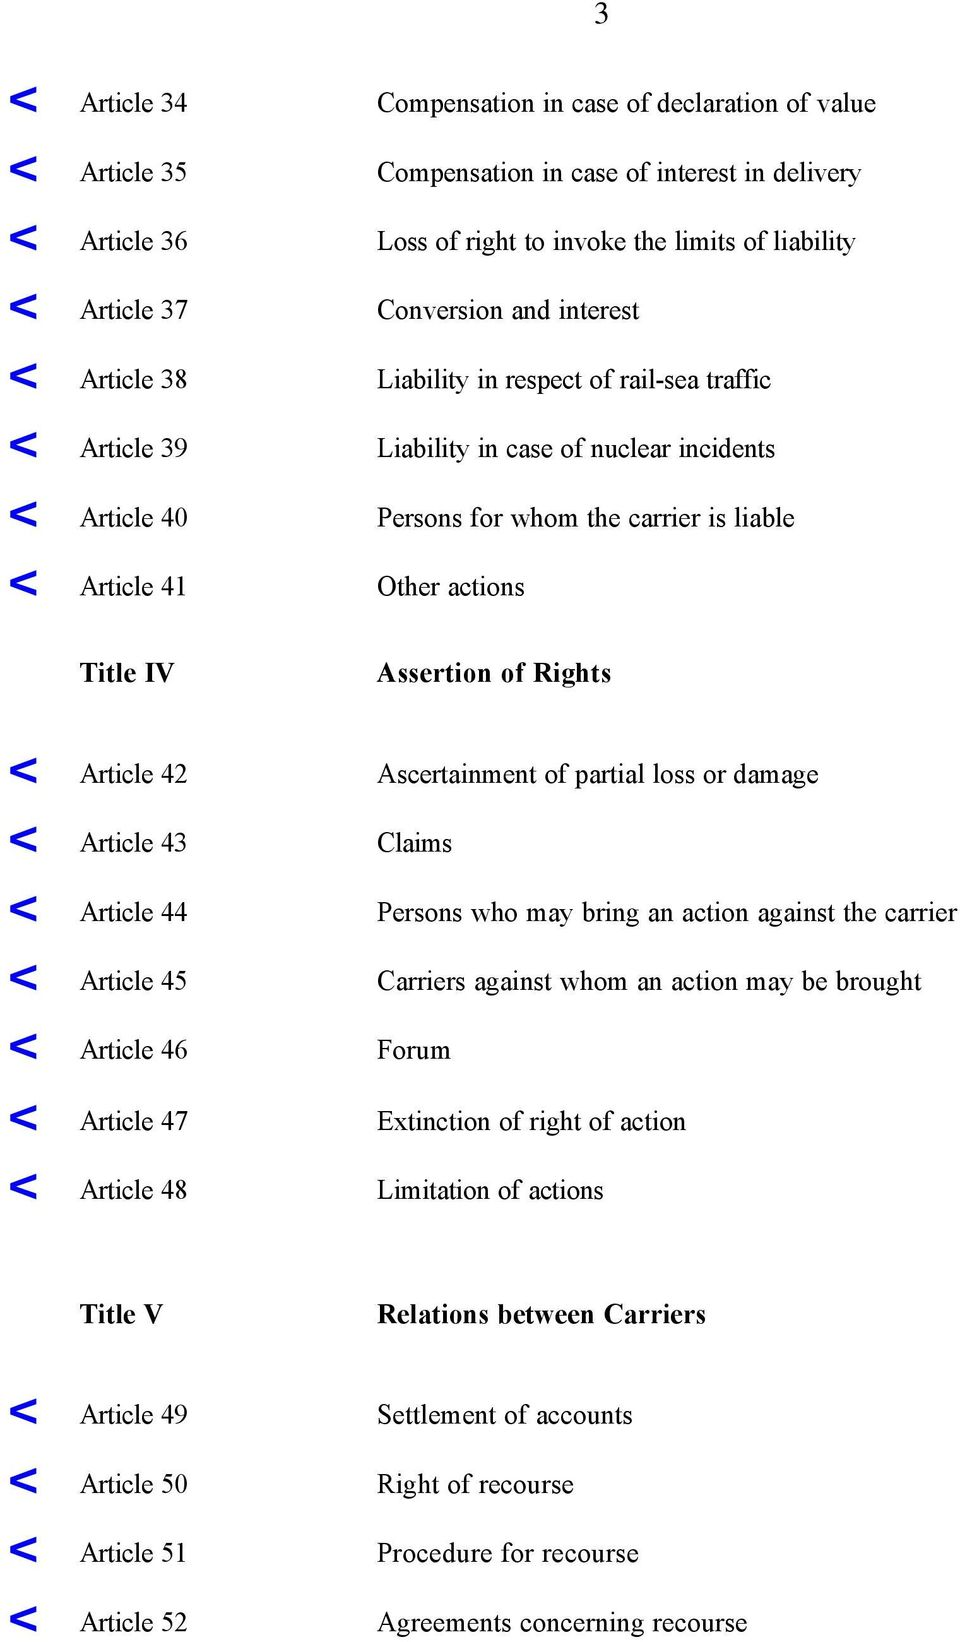 Other actions Title IV Assertion of Rights < Article 42 Ascertainment of partial loss or damage < Article 43 Claims < Article 44 Persons who may bring an action against the carrier < Article 45